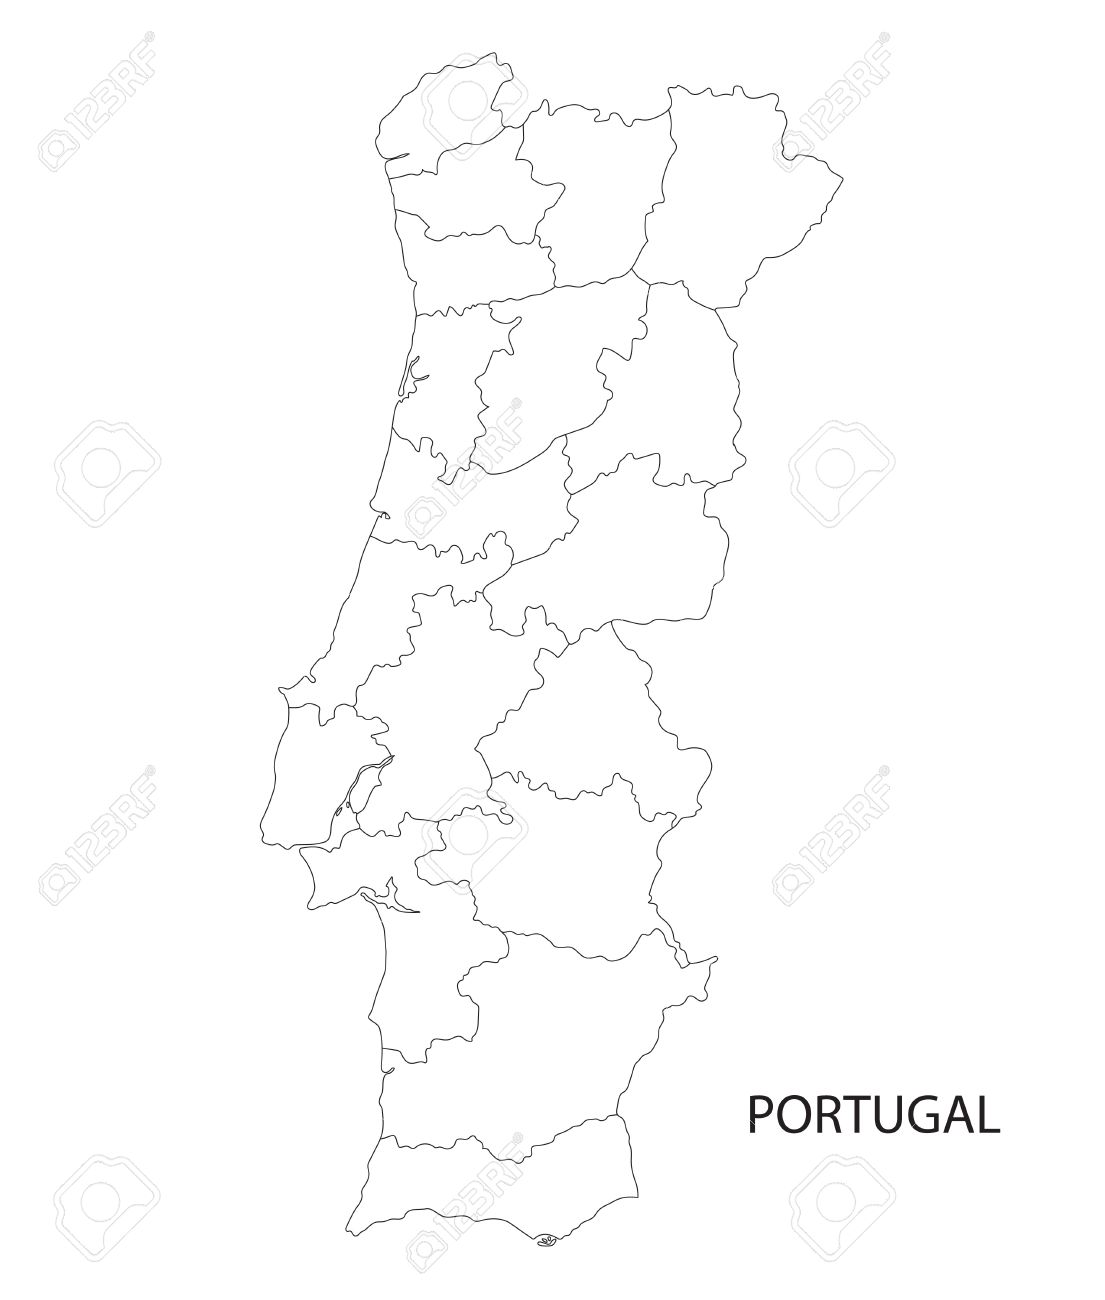 Portugal Map Outline Of Districts On Separate Layers Royalty Free - Portugal map black and white